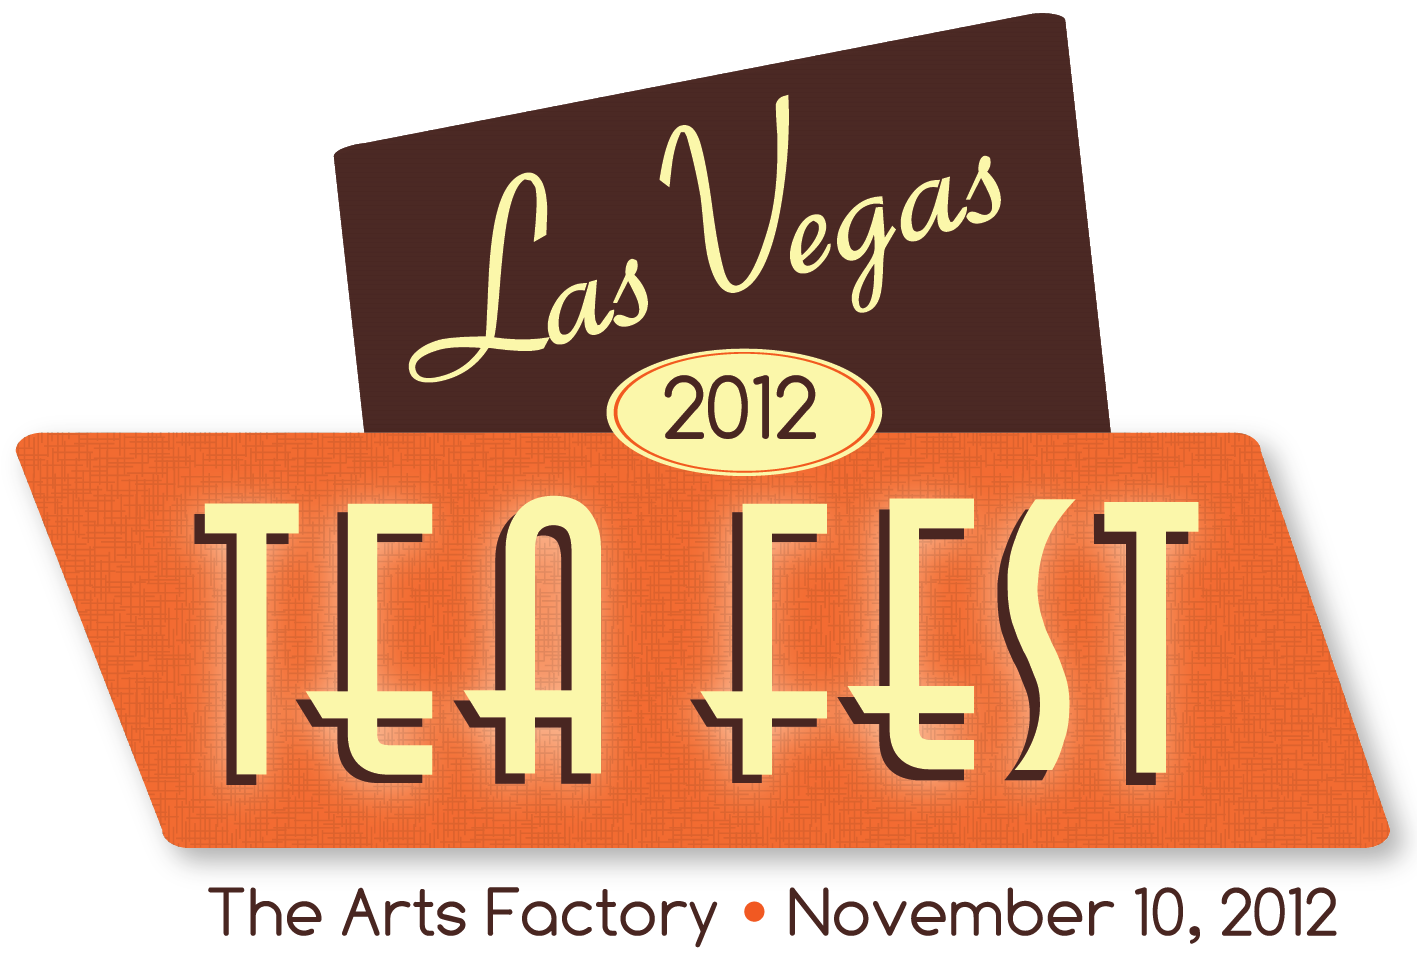 Why a tea fest in Las Vegas?